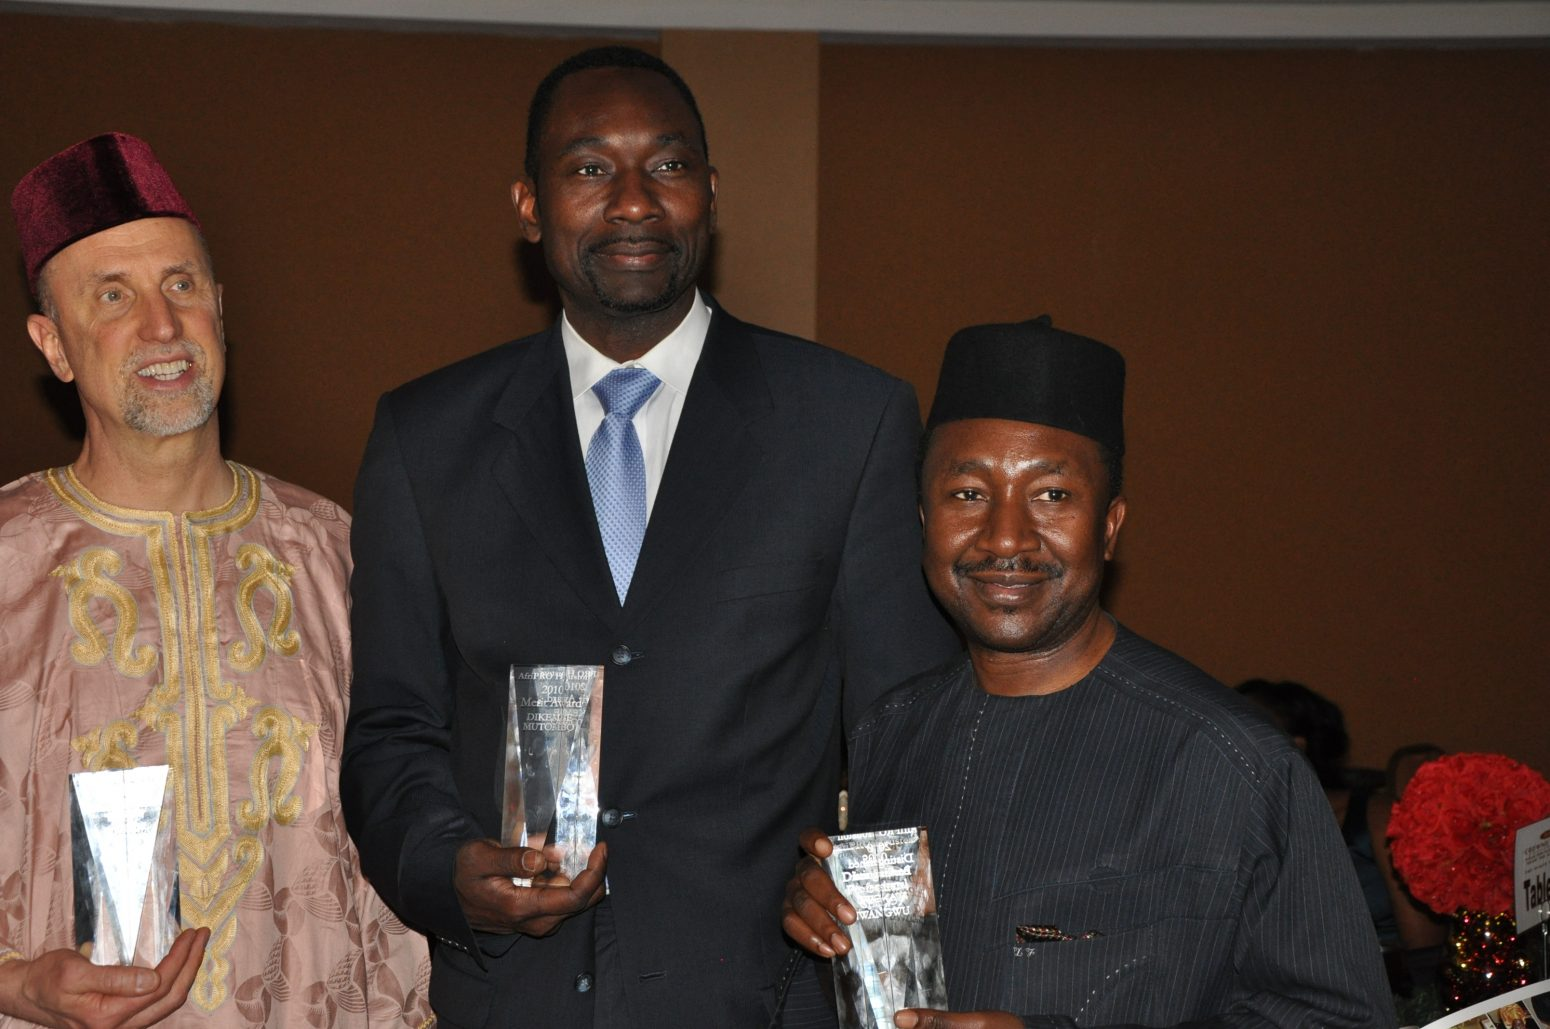 AfriPro gives top awards to NBA's Dikembe Mutombo, USAfrica's Chido Nwangwu, NFL's Amobi Okoye, Indego Africa for enhancing Africa, globally